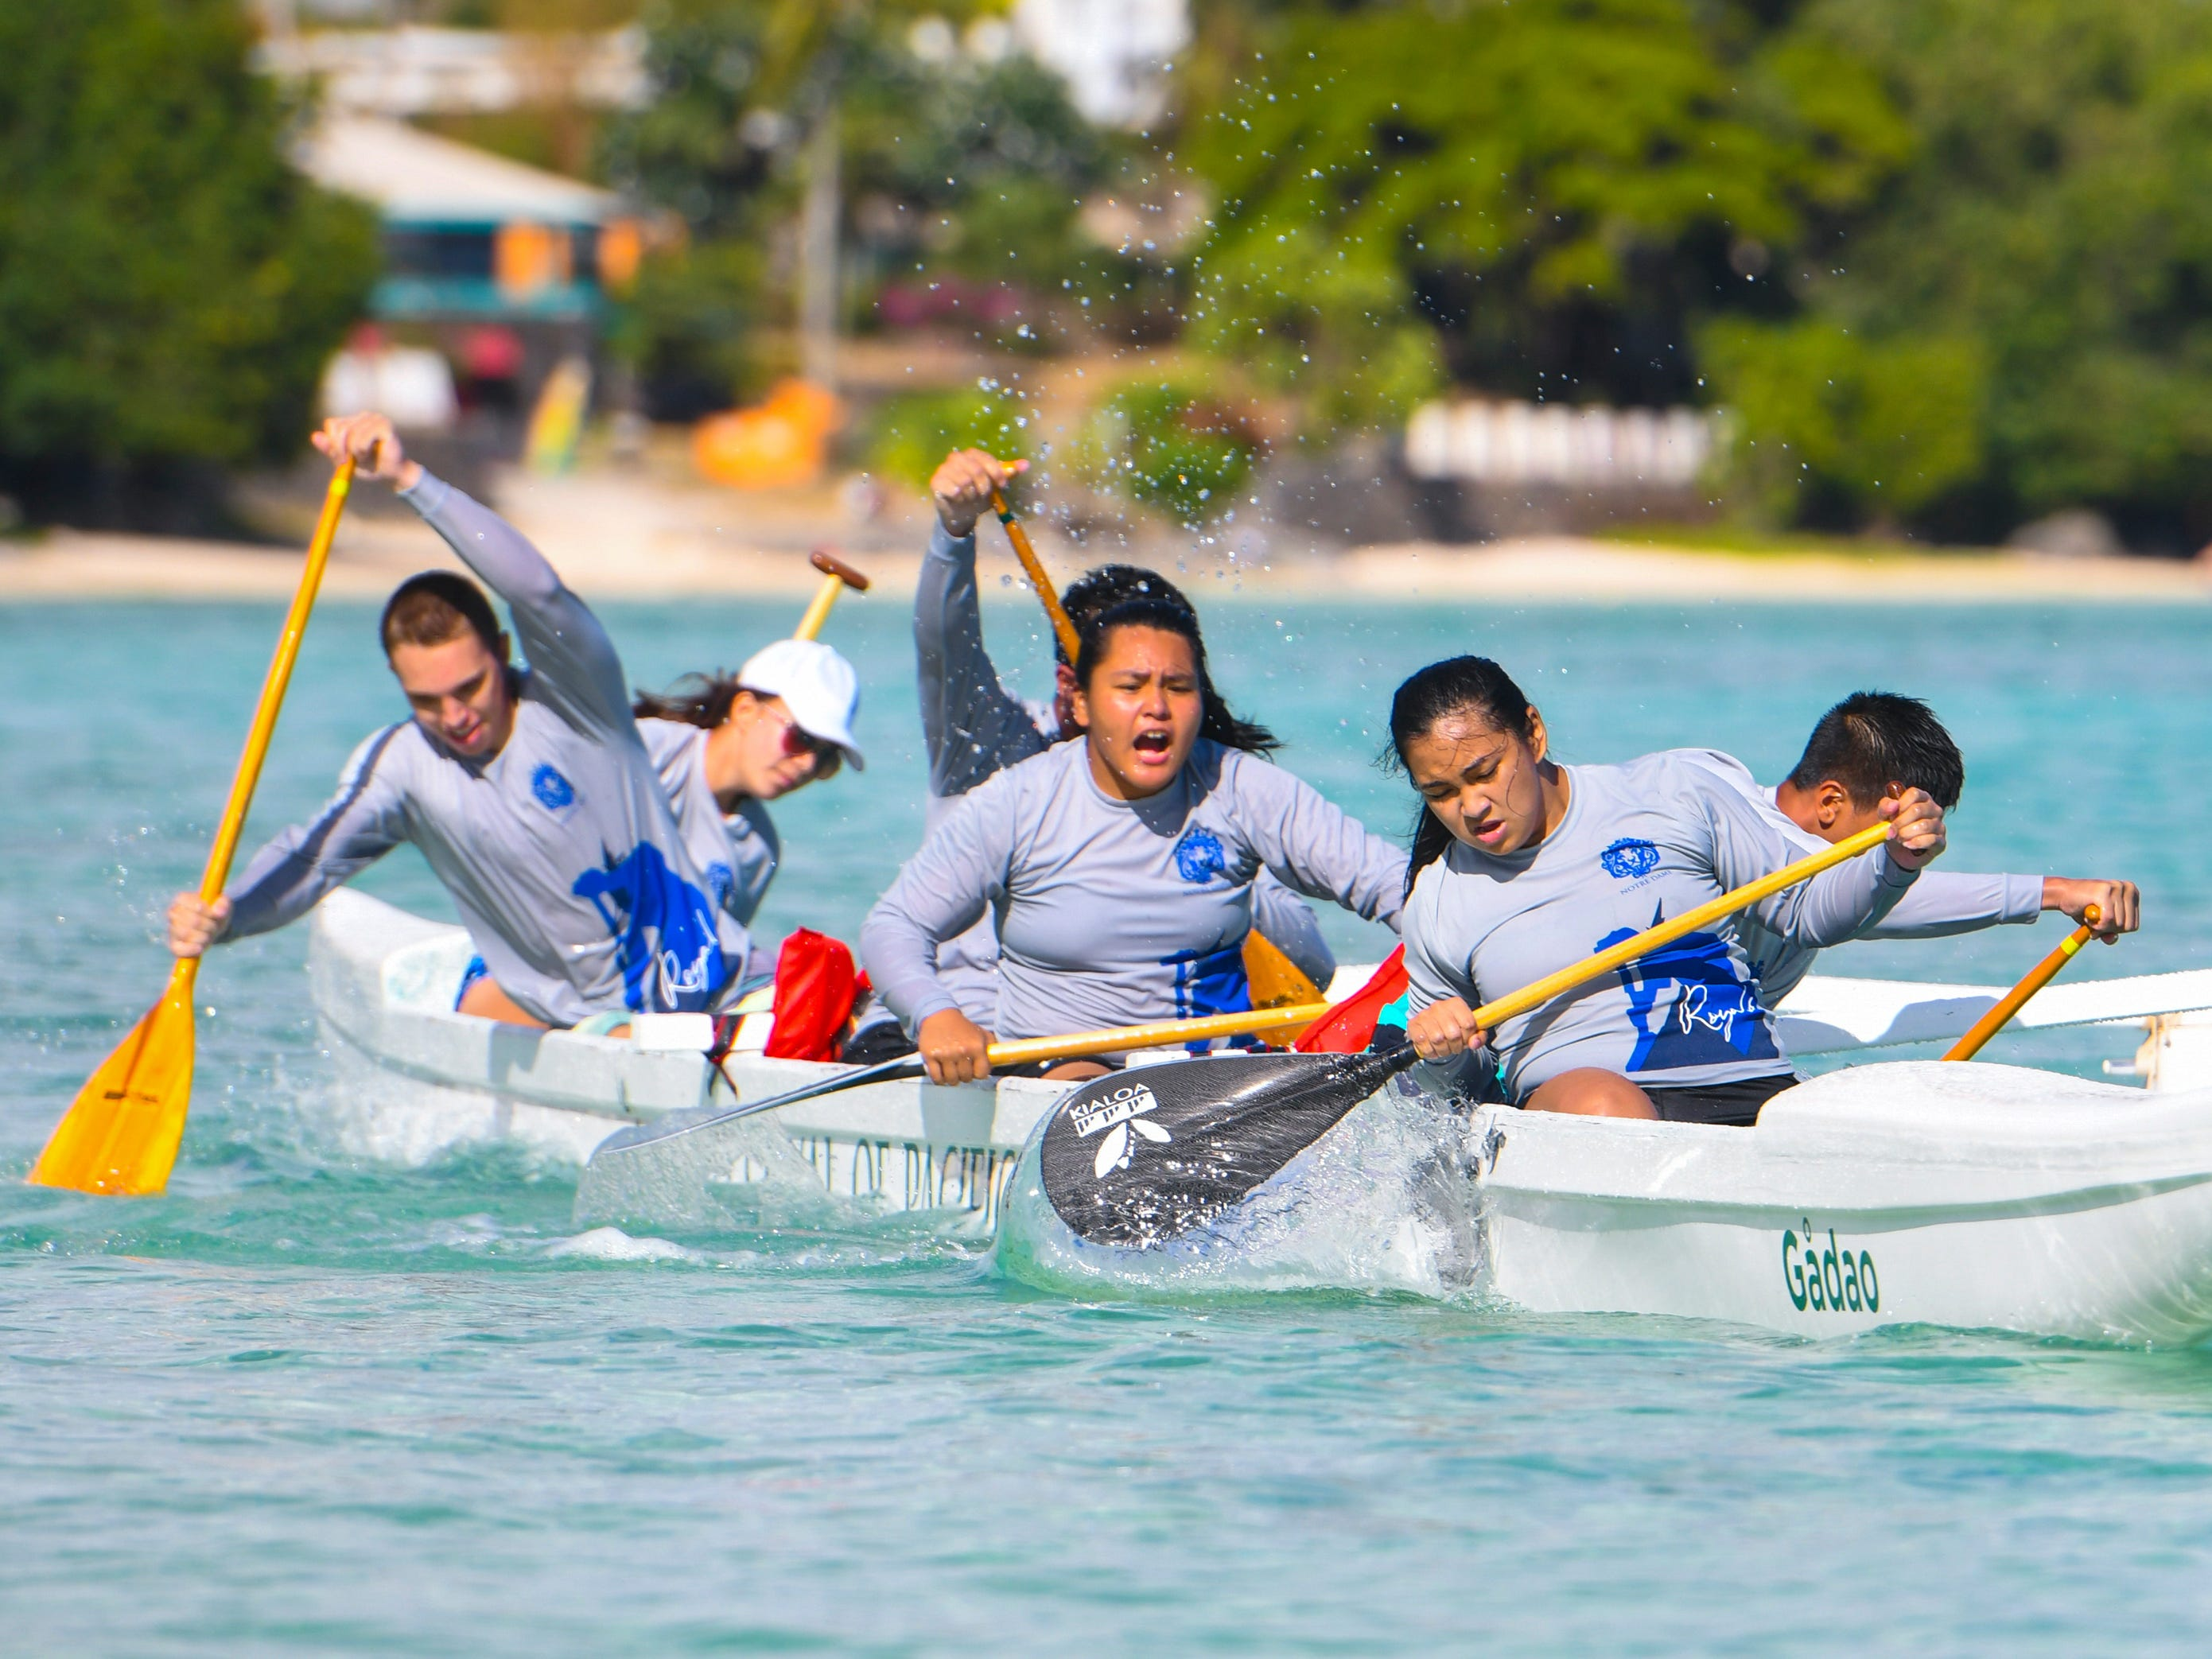 Preliminary and final IIAAG Paddling competition races were held for island high schools in the waters off Matapang Beach in Tumon on Saturday, May 11, 2019.